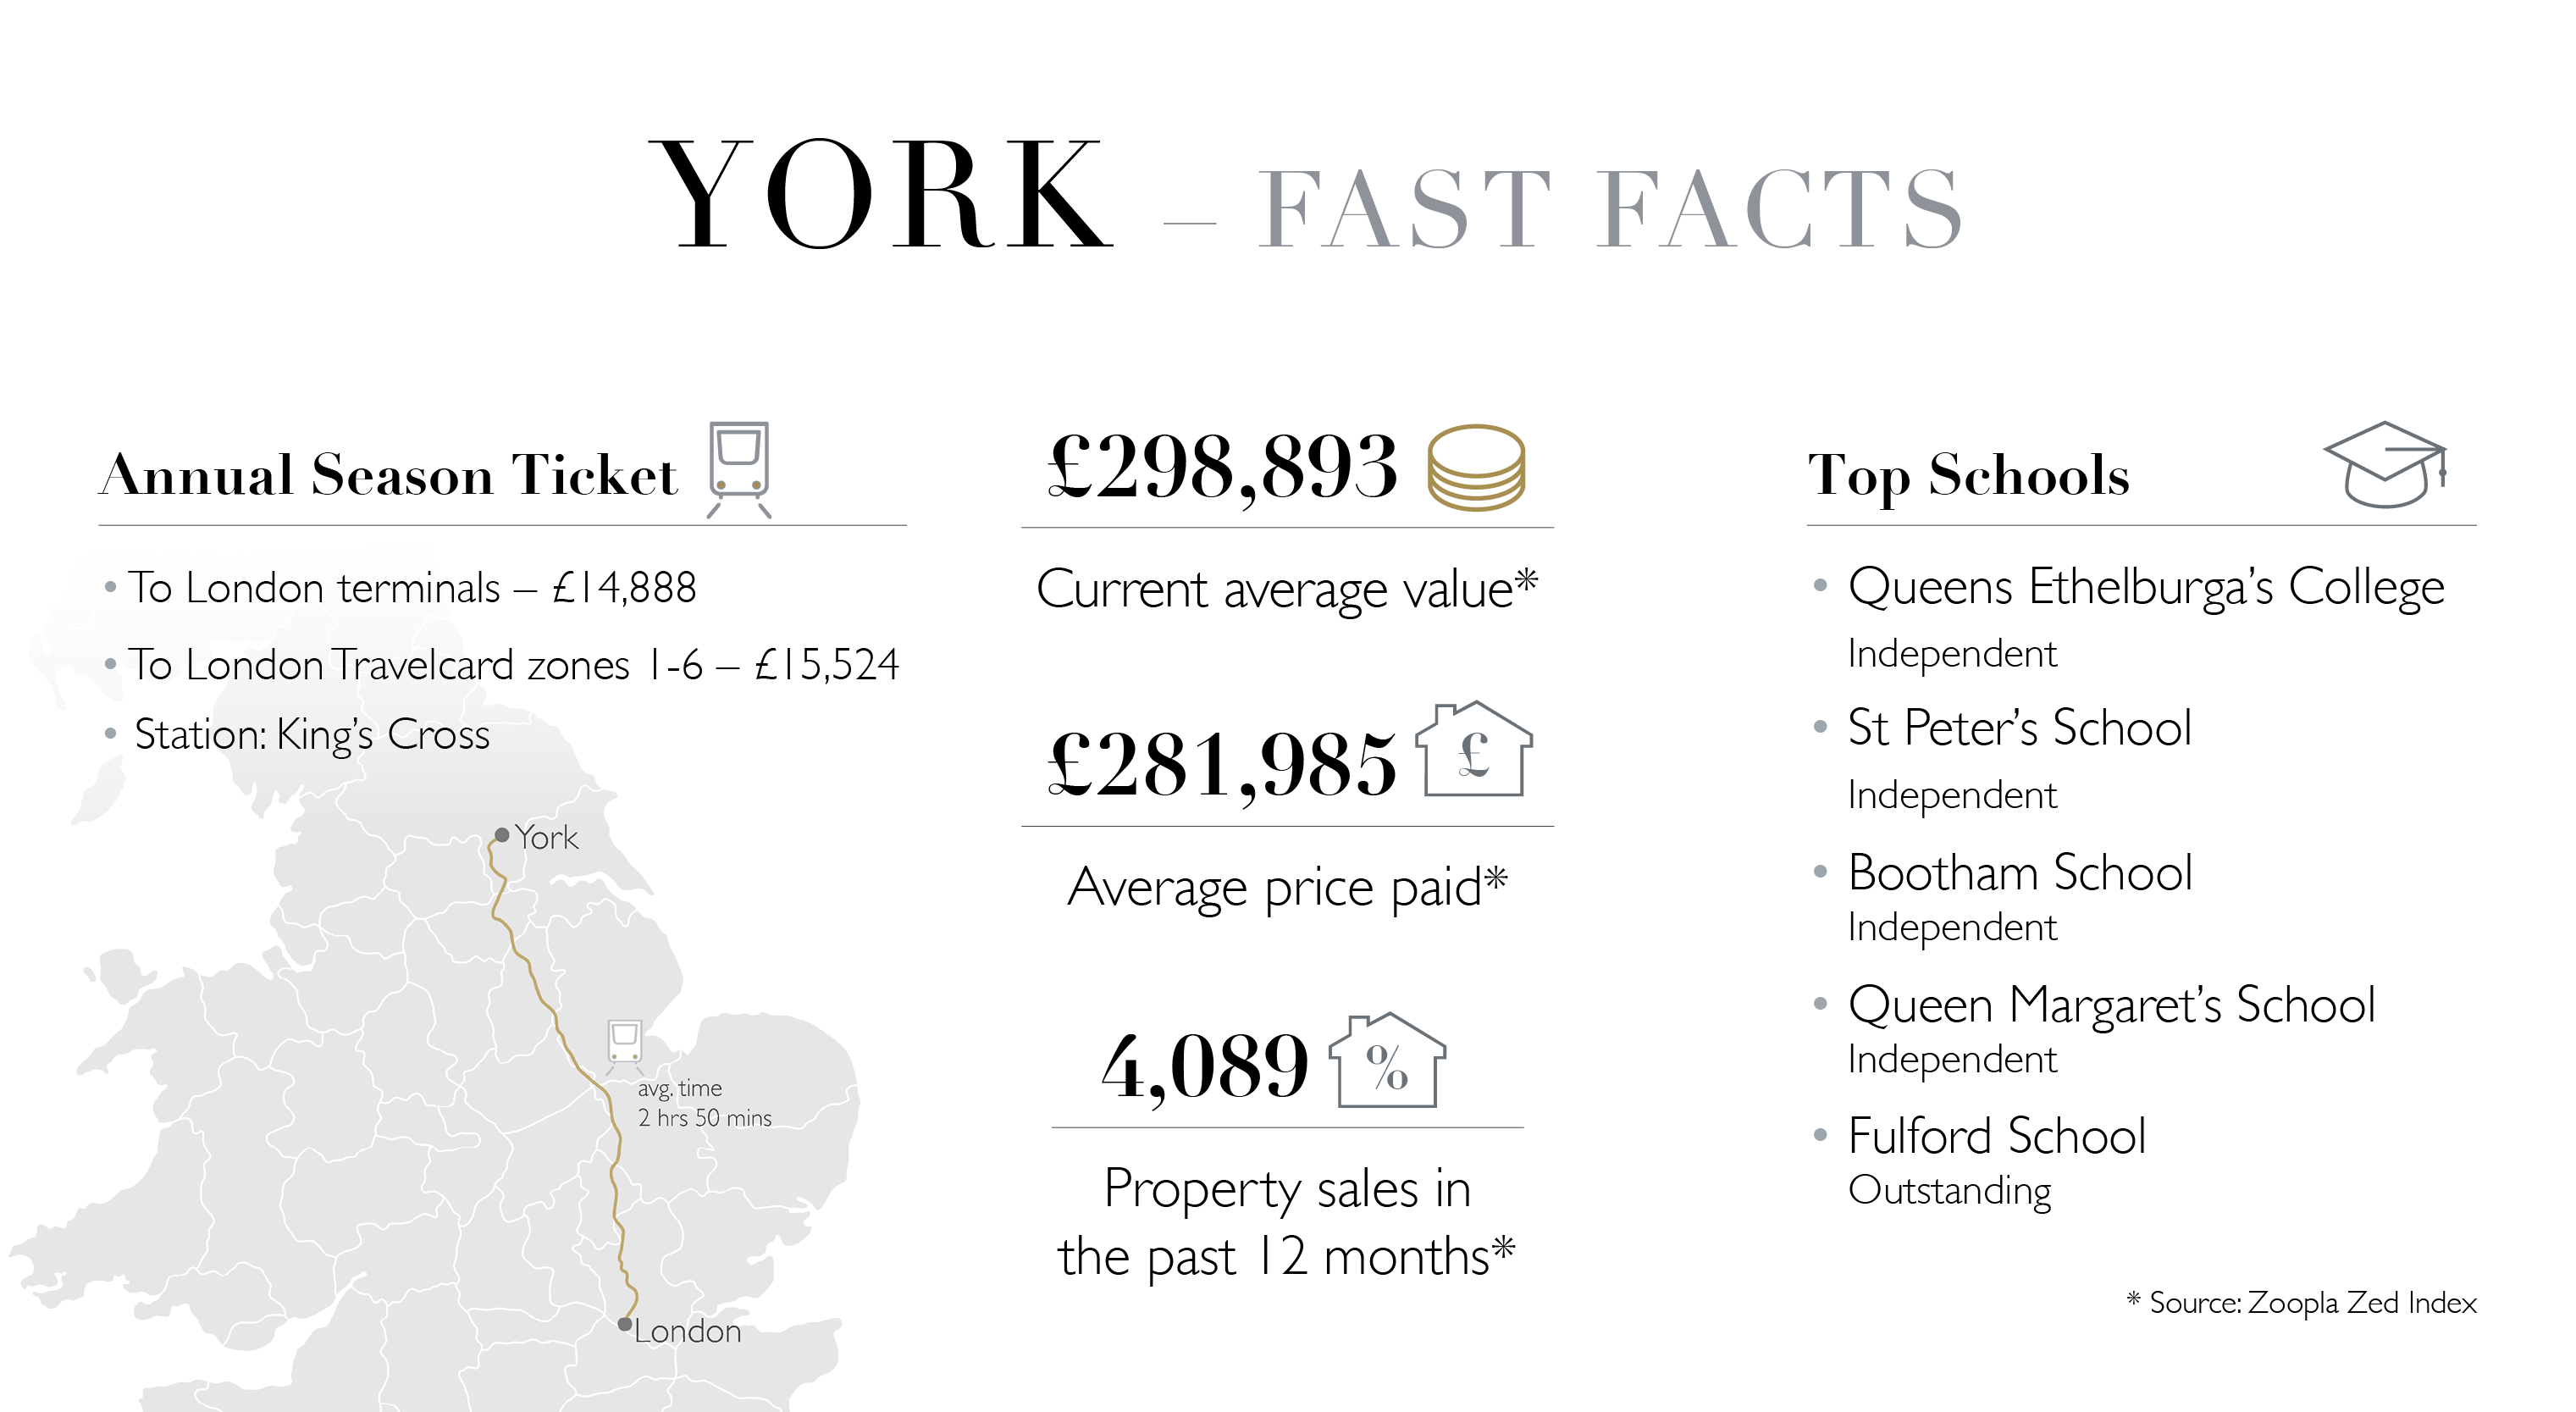 York Fast Facts